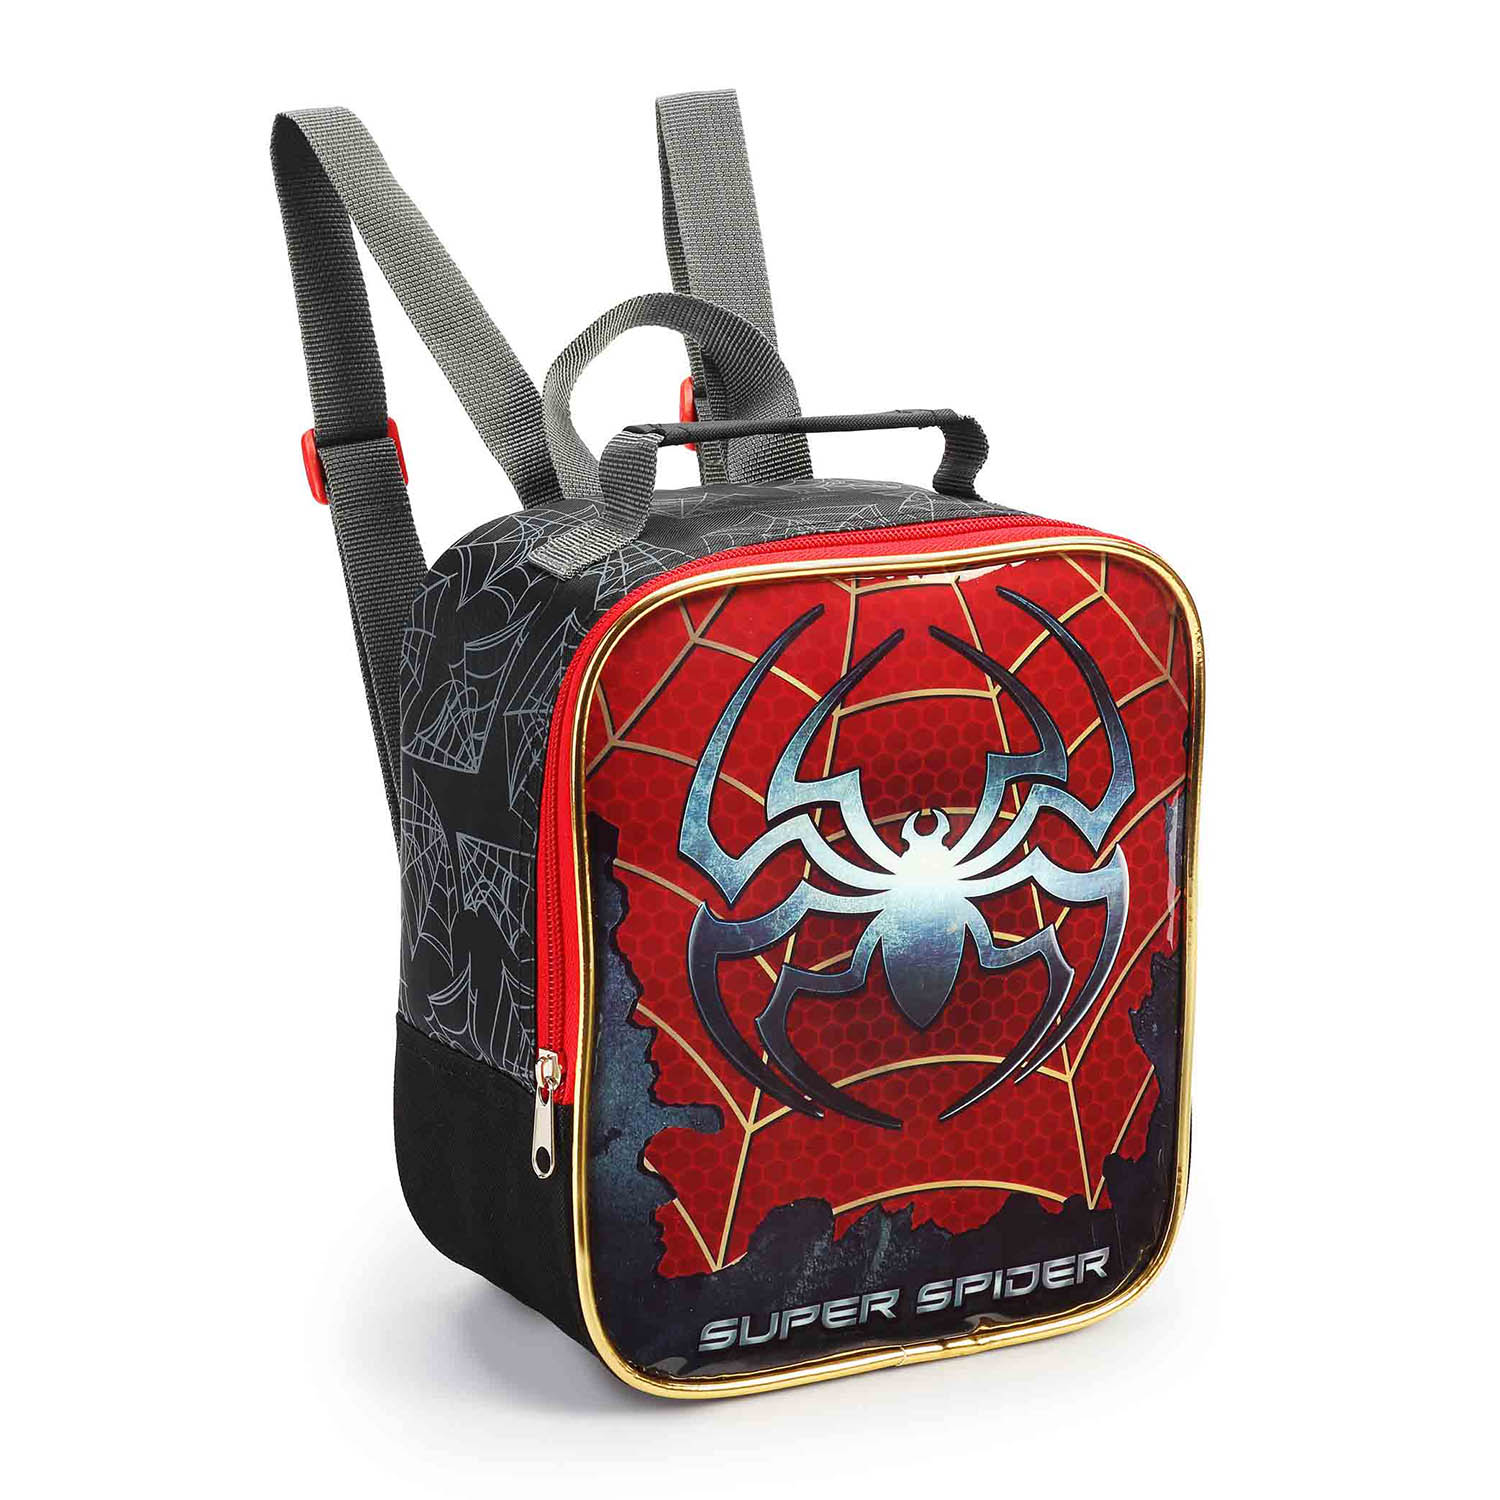 KIT ESCOLAR MASCULINO SUPER SPIDER - SEANITE